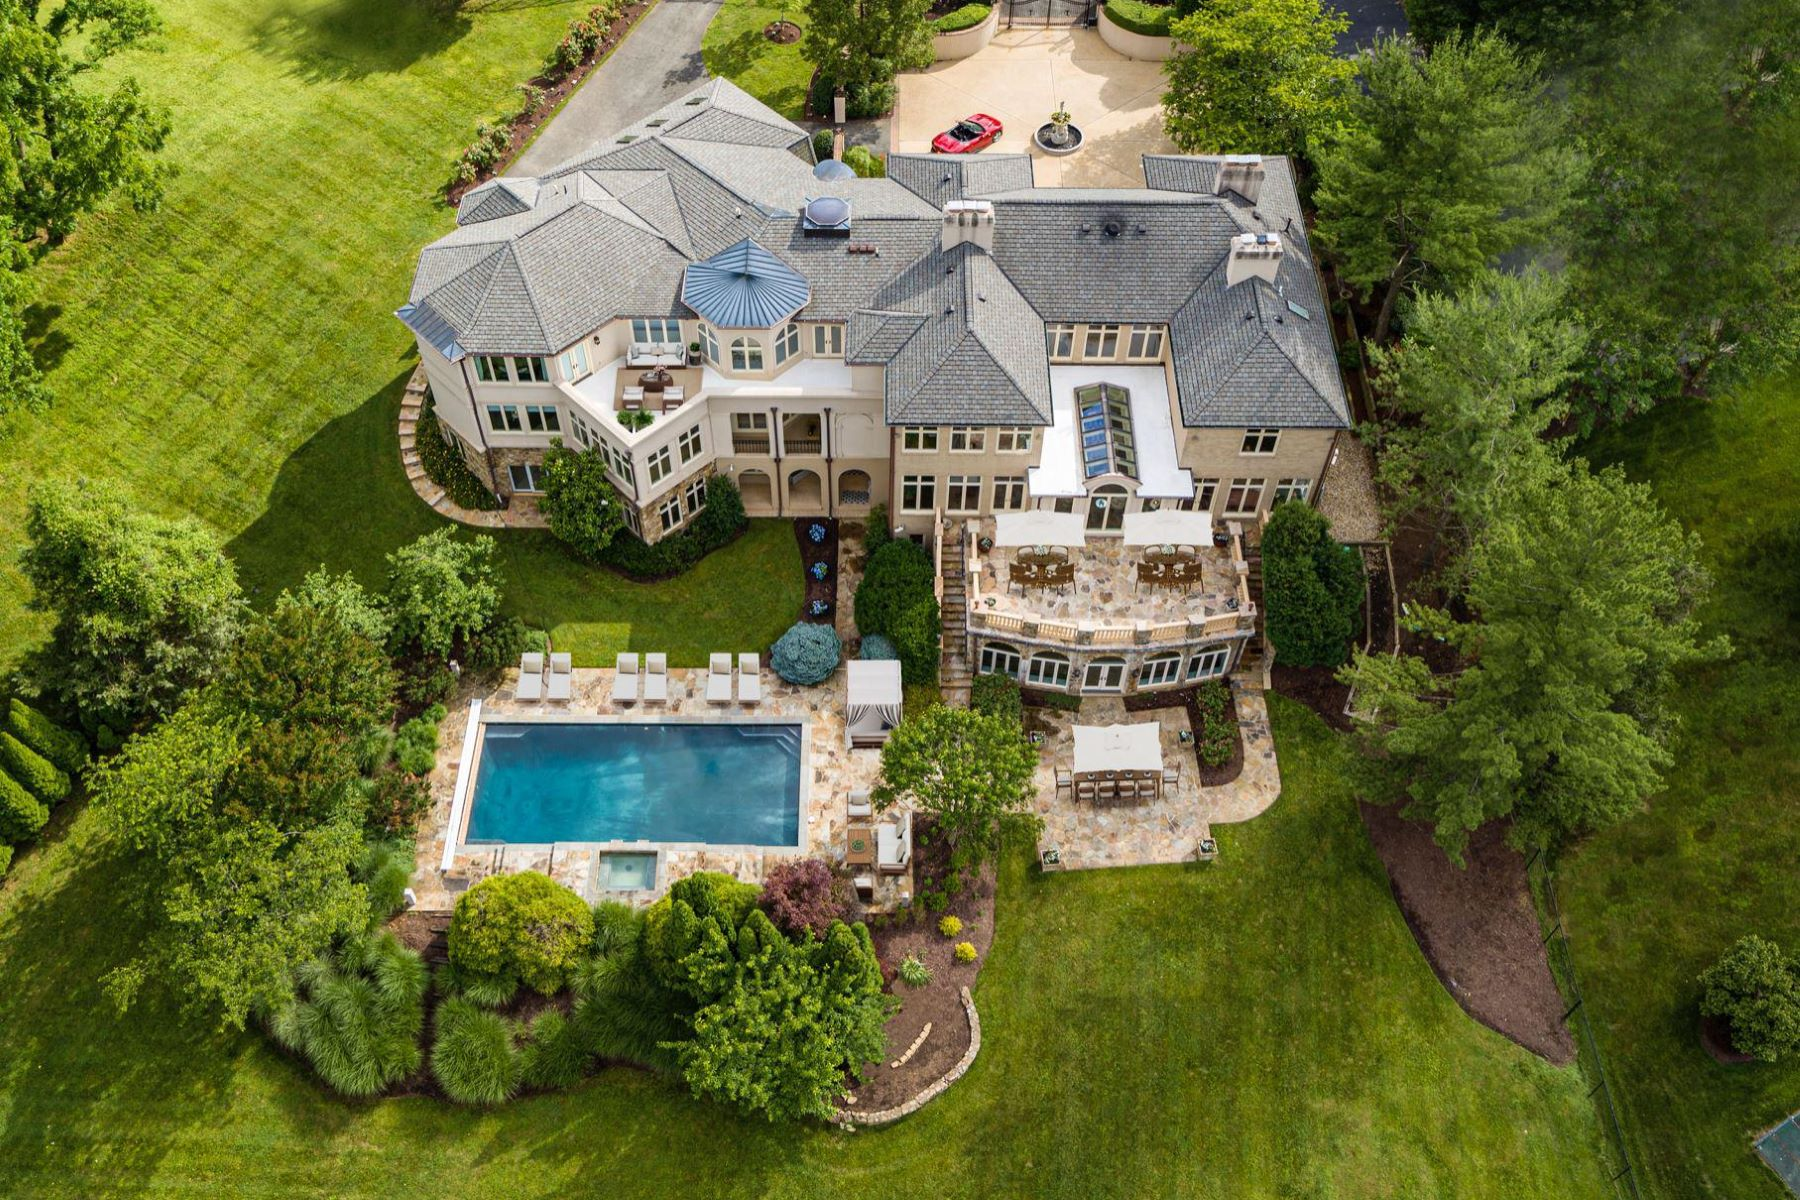 Single Family Homes for Sale at #8313 Persimmon Tree Rd Bethesda, Maryland 20817 United States